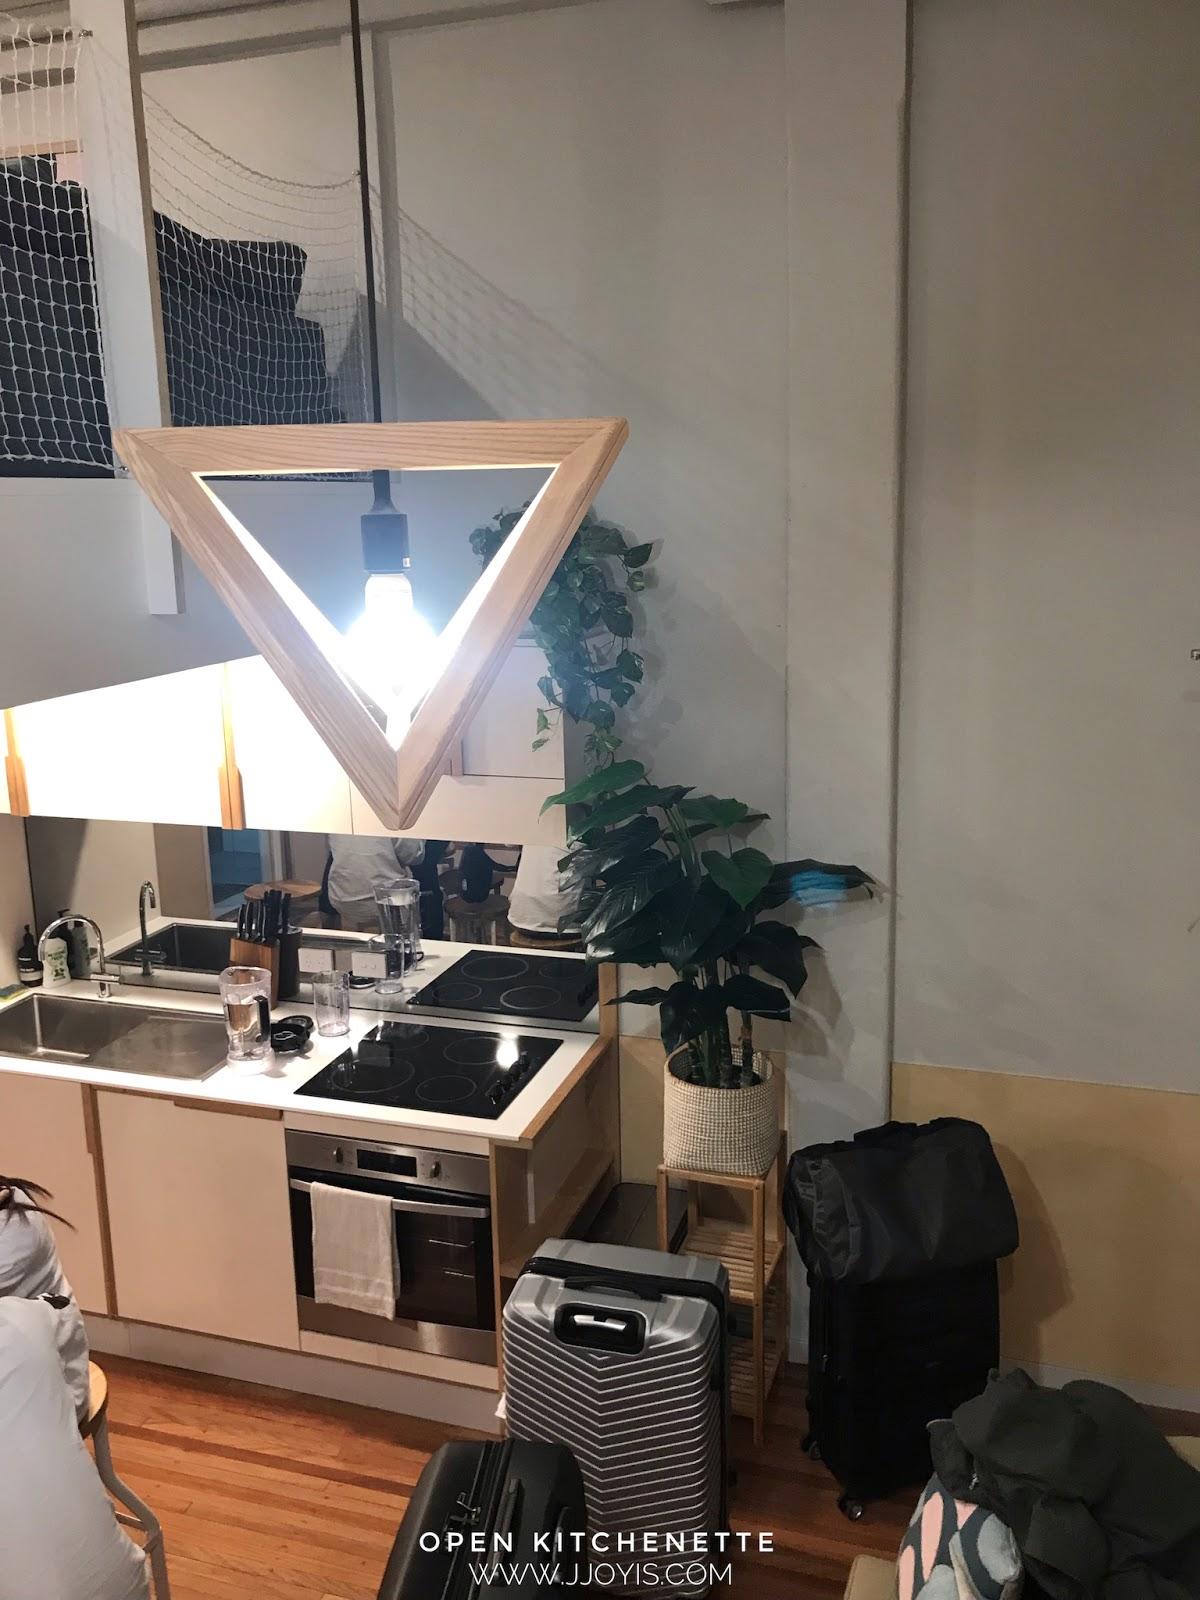 Airbnb for large groups (sleep 7) in Brisbane CBD open kitchen